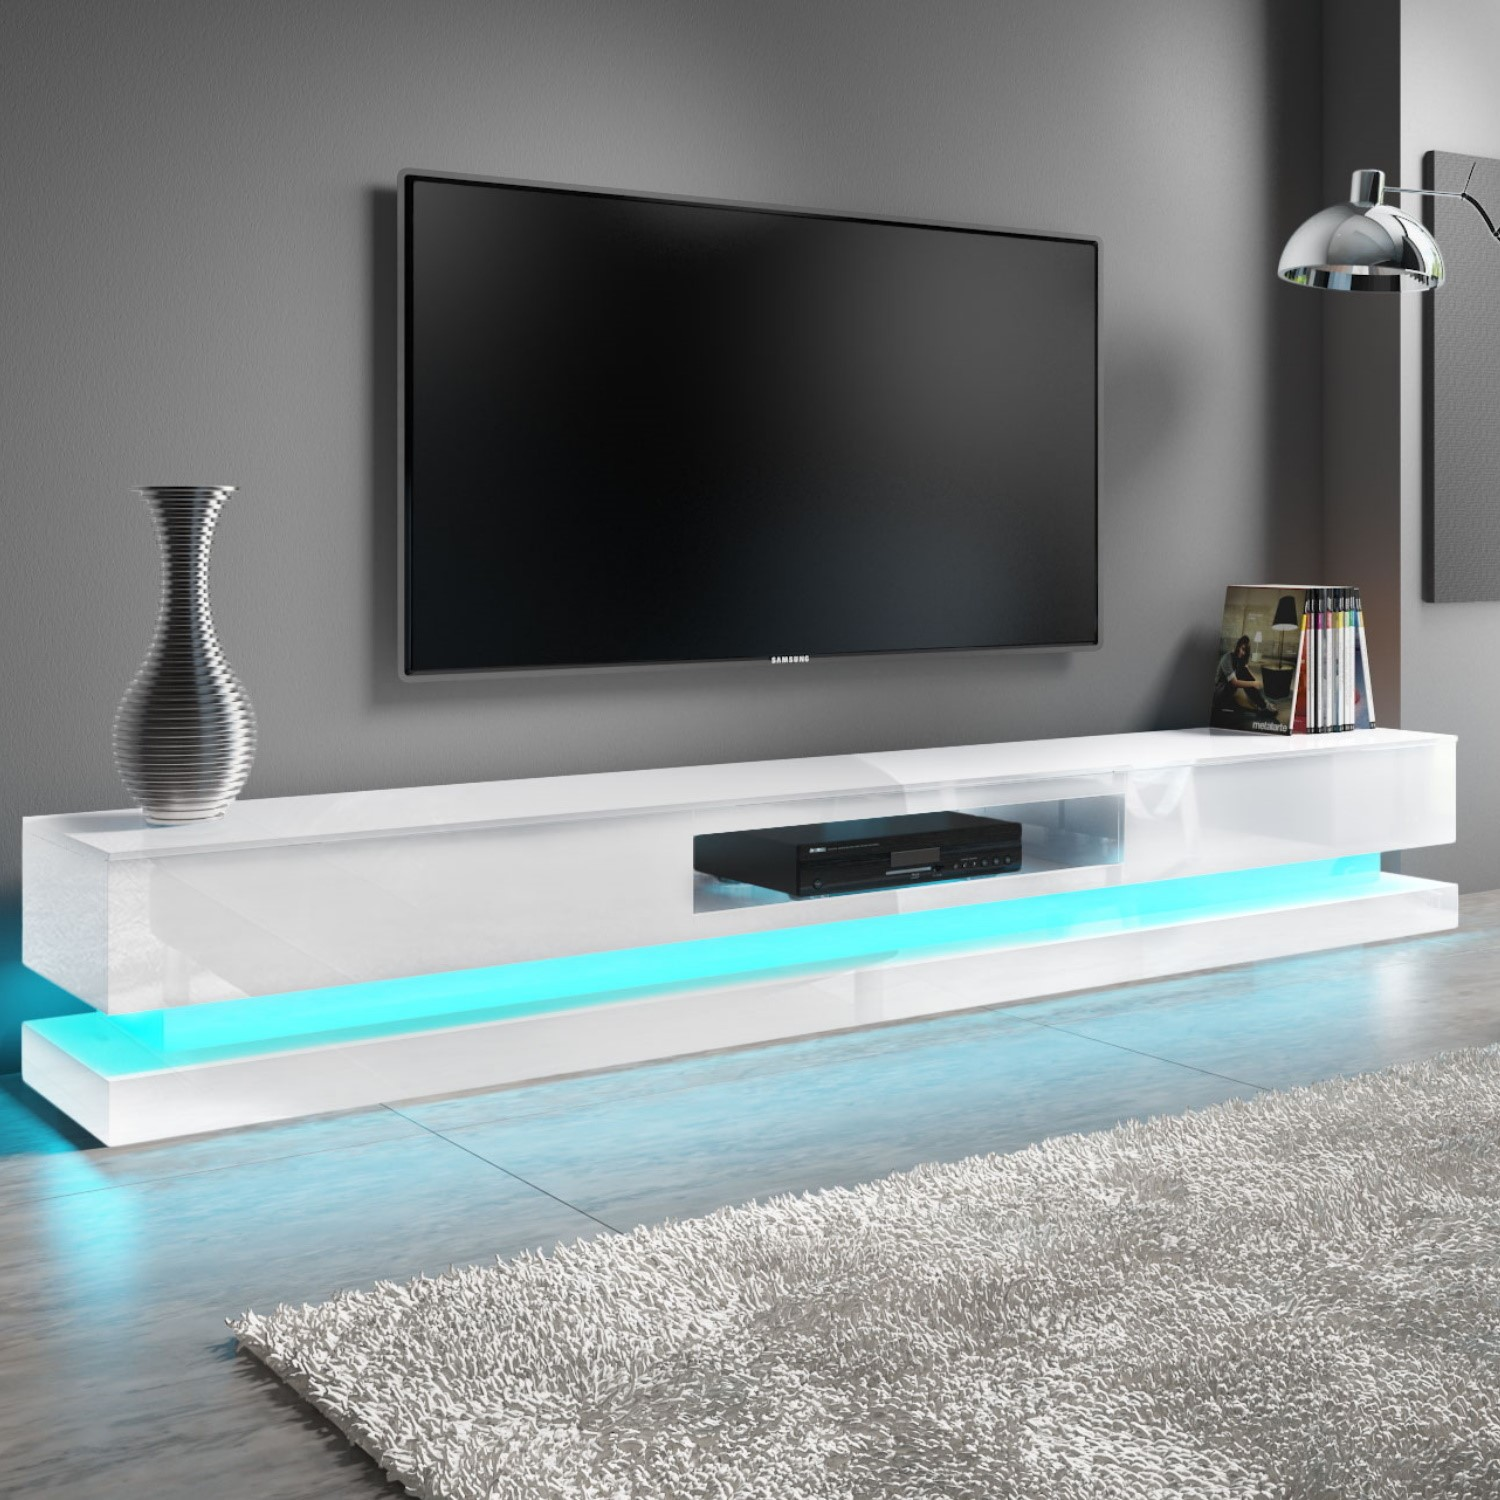 Extra Large White Gloss Tv Stand With Leds Tv S Up To 80 Evoque Furniture123